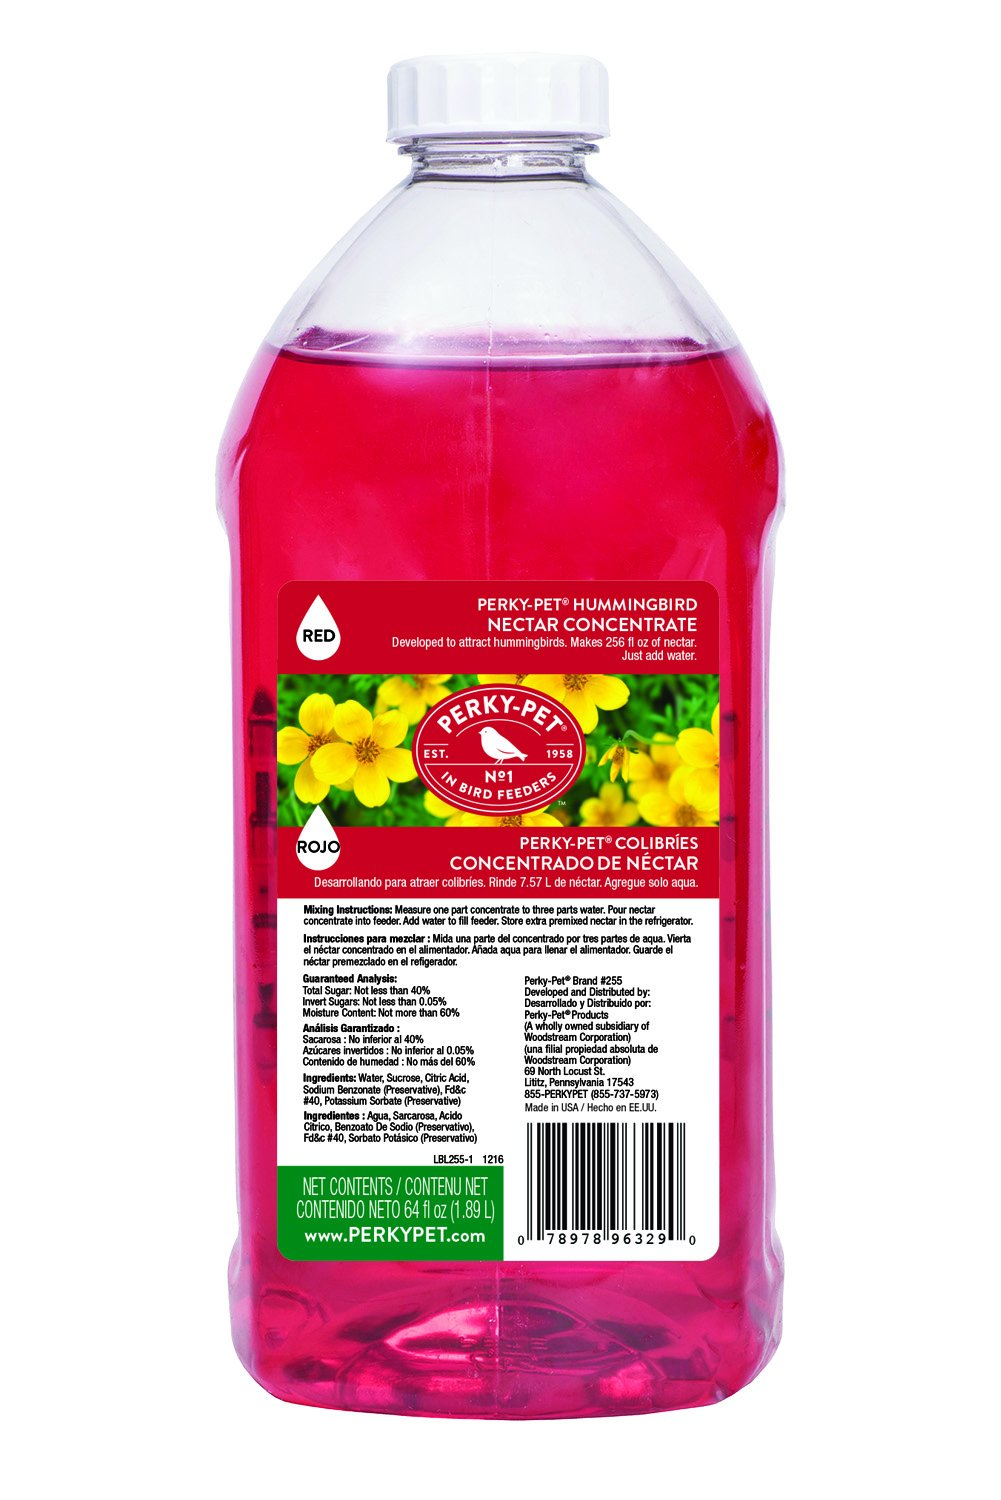 Perky Pet 255 Hummingbird Nectar Concentrate, 64 oz, Red Perky-Pet